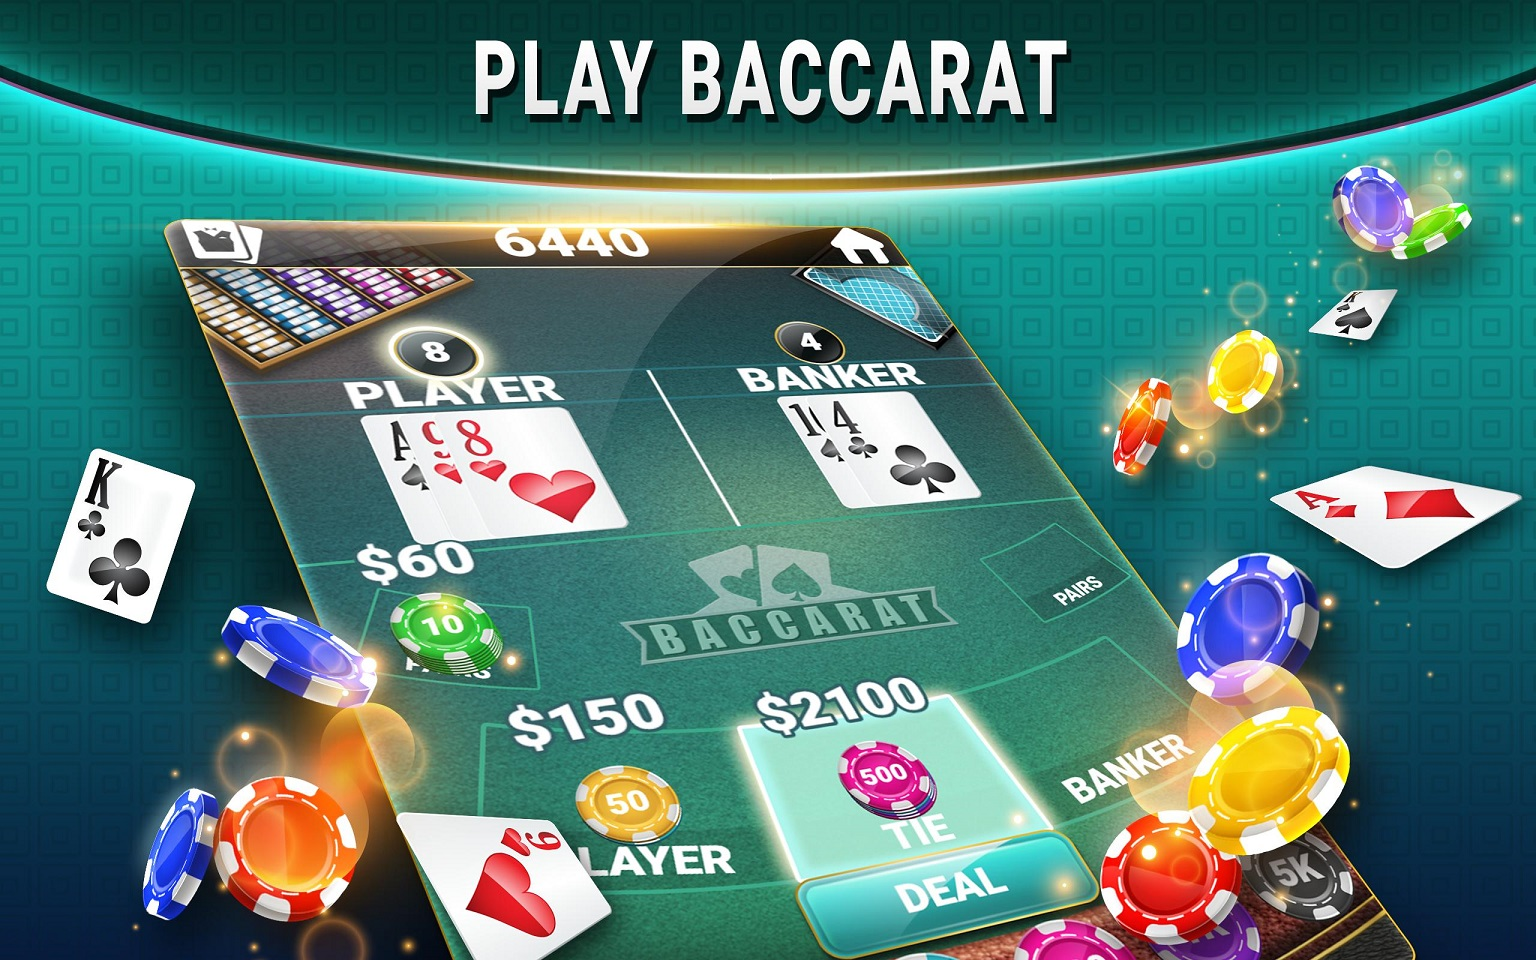 Poker Casino - What Do Those Stats Mean?